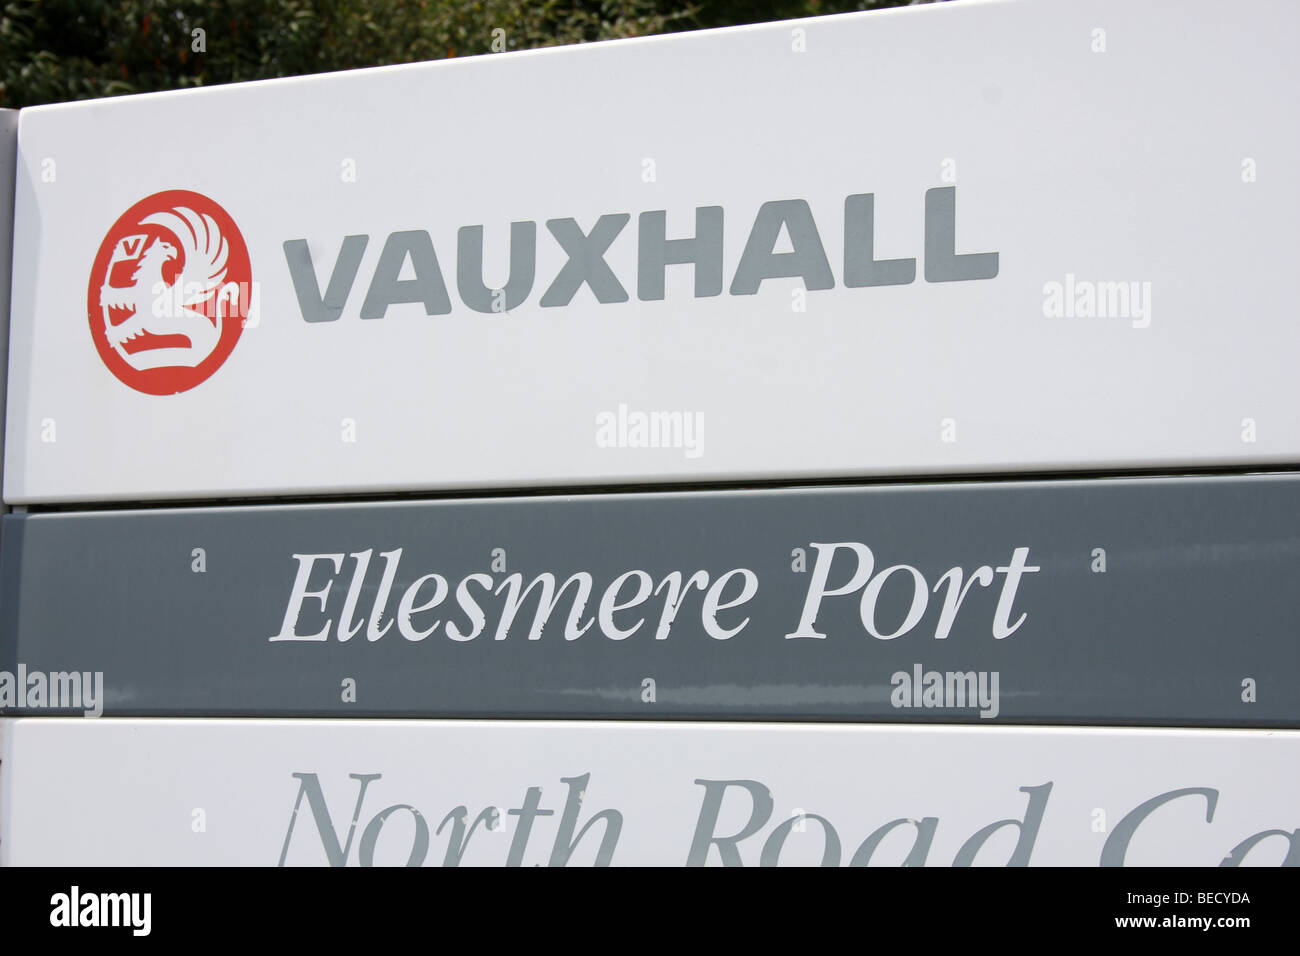 Vauxhalls car factory signeage outside the Ellesmere Port factory - Stock Image